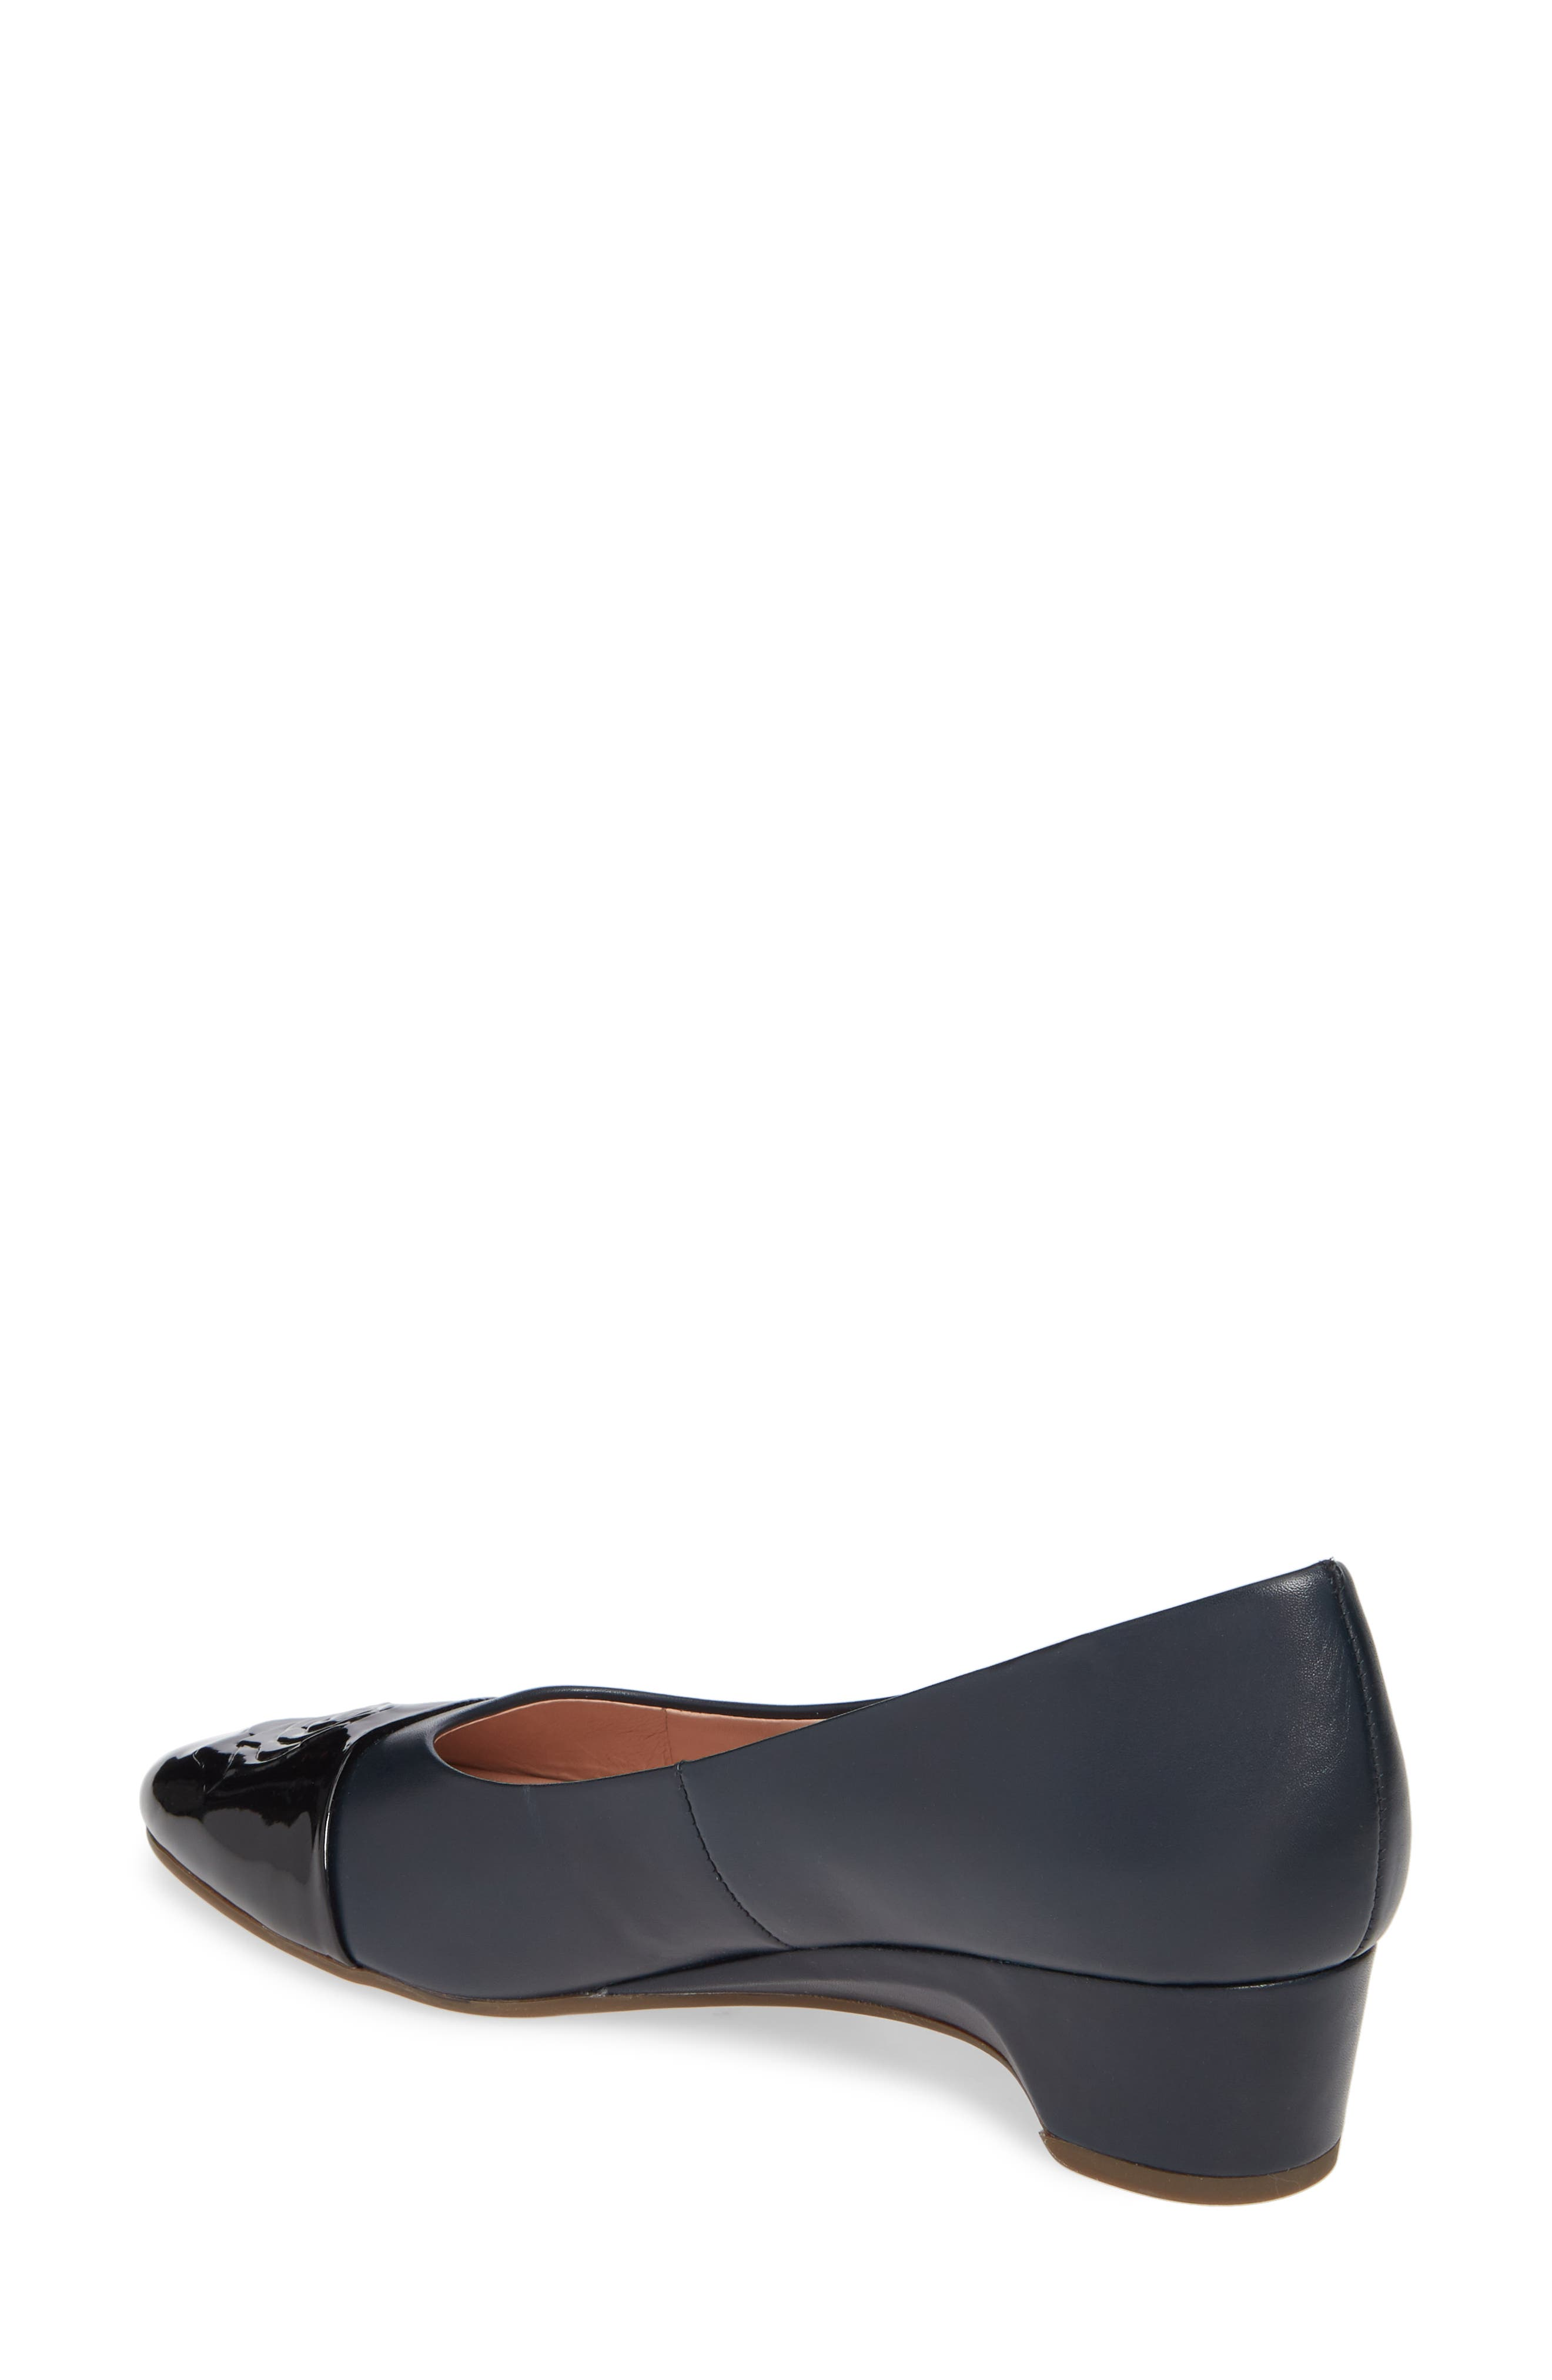 TARYN ROSE, Babe Cap Toe Pump, Alternate thumbnail 2, color, MIDNIGHT/ BLACK LEATHER